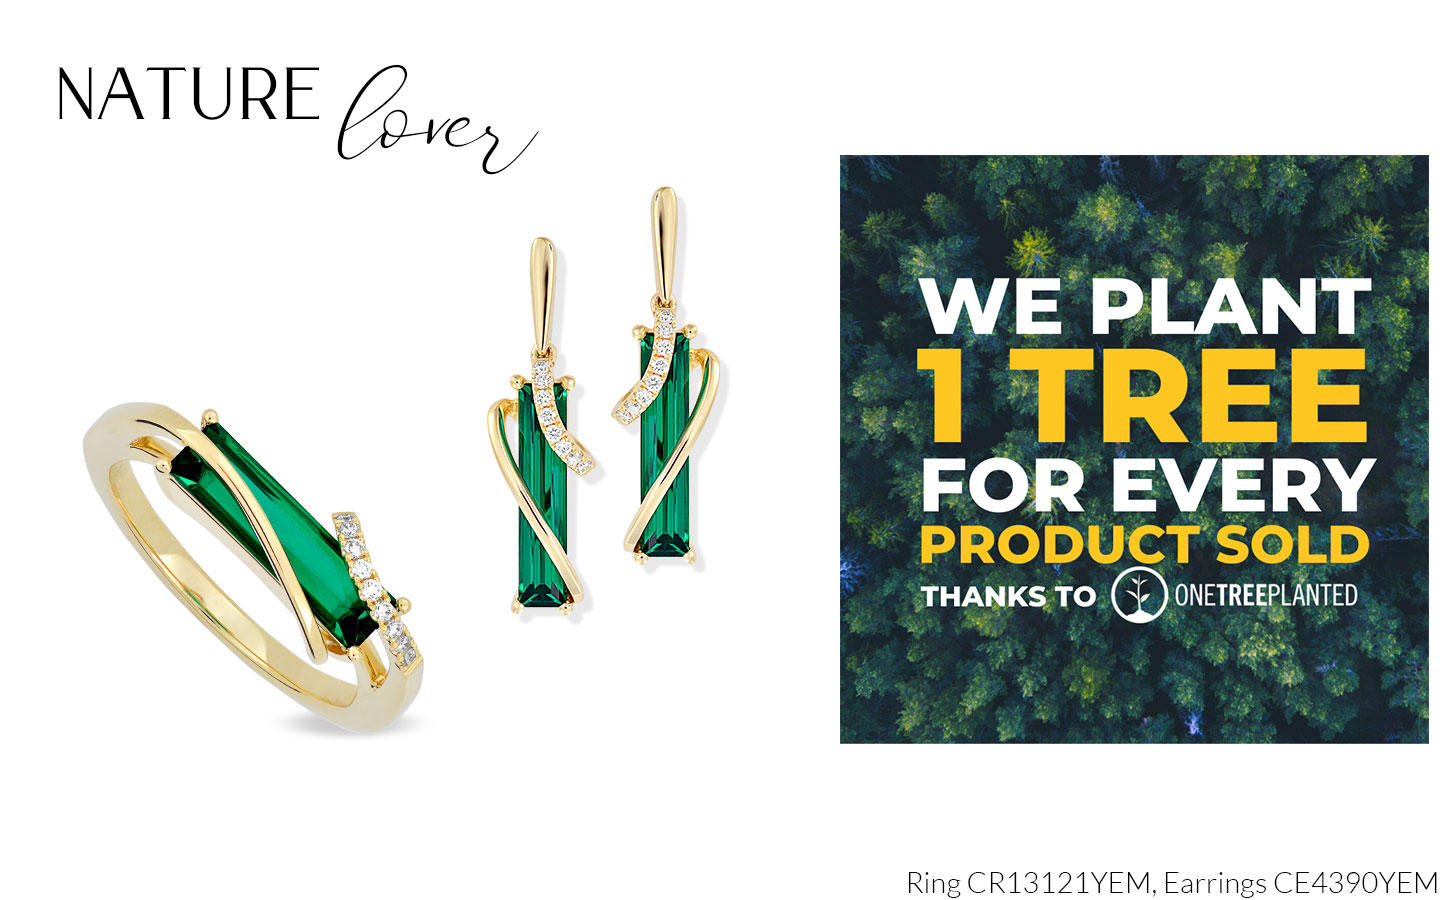 Nature Mom Nature Lover Featuring CR13121YEM and Earrings CE4390YEM. We plant 1 tree for every product sold.